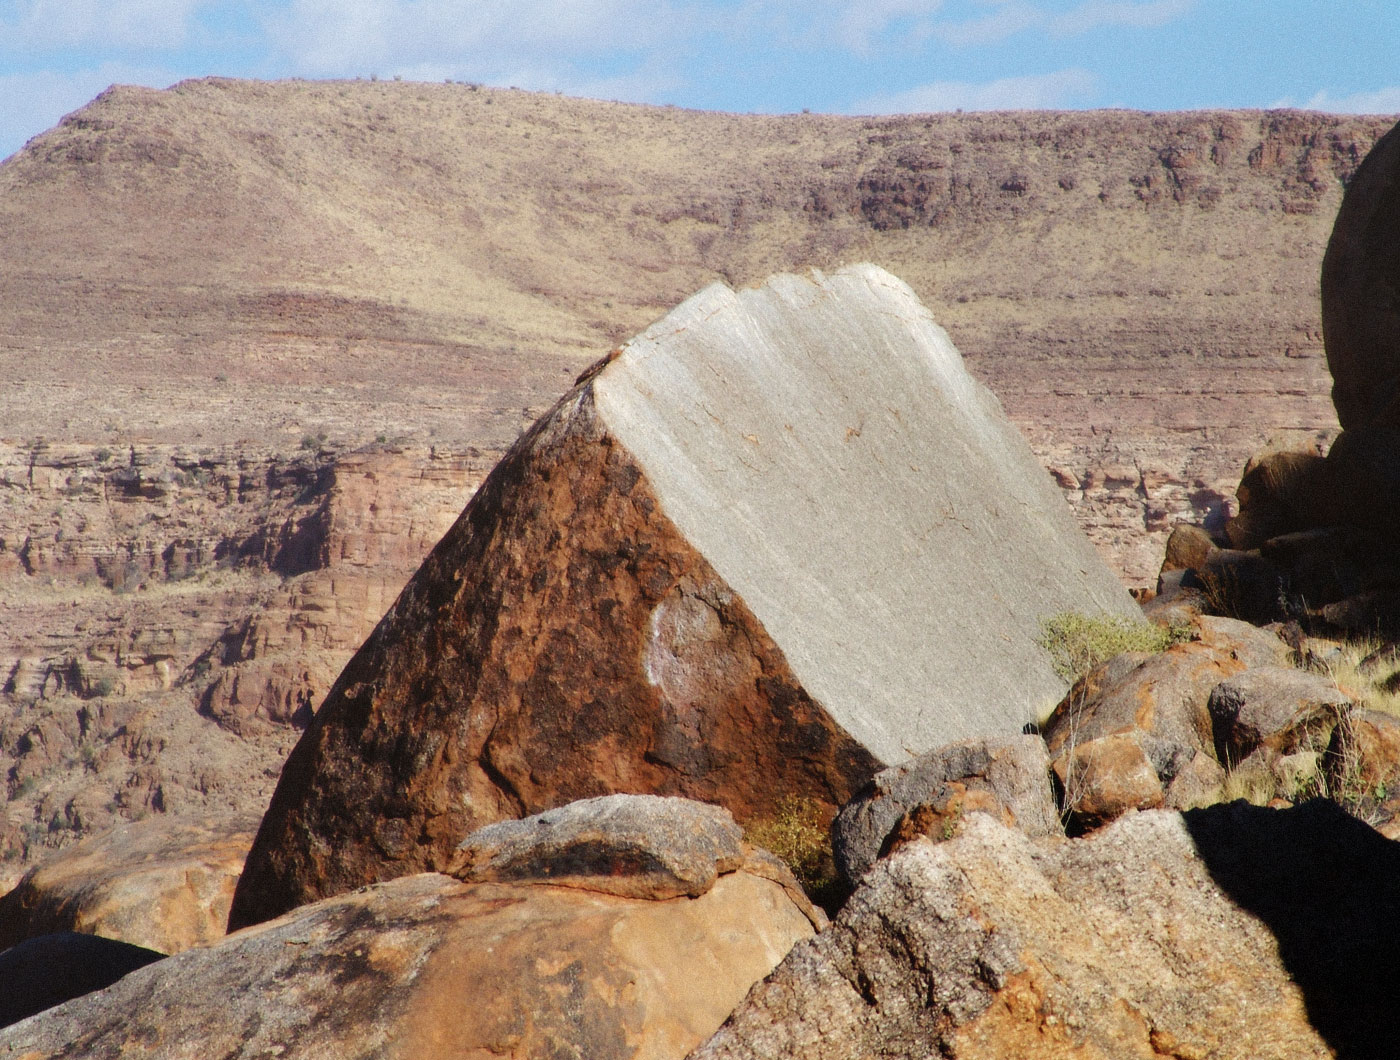 South/Fish River Canyon/Luderitz